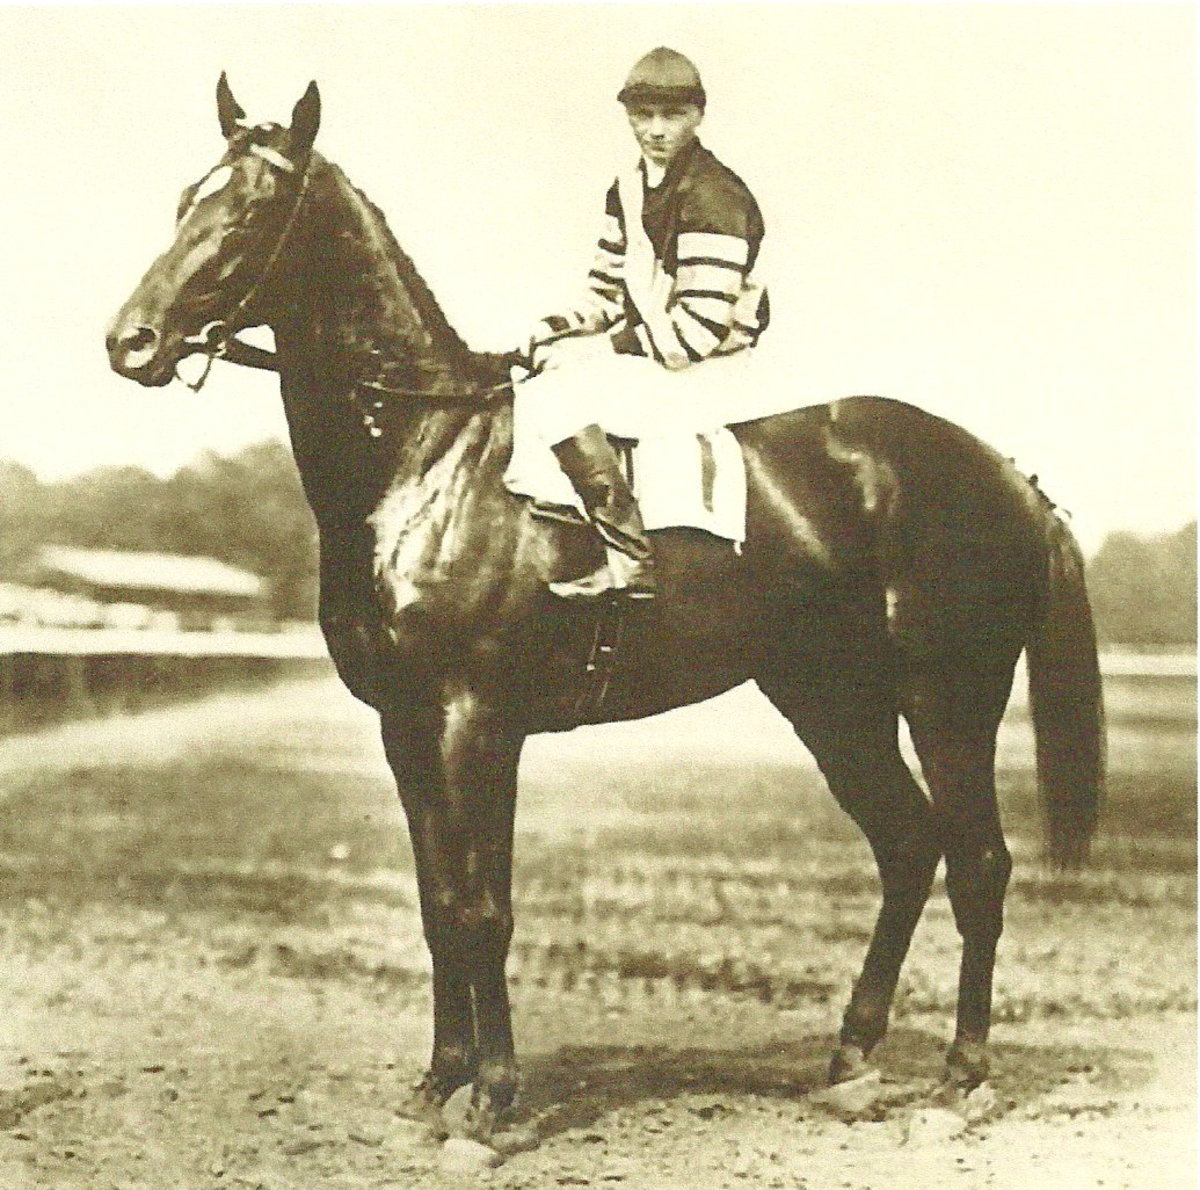 Man o' War (21: 20-1-0) is rated by a Blood-Horse publication as the No. 1 Racehorse ever.